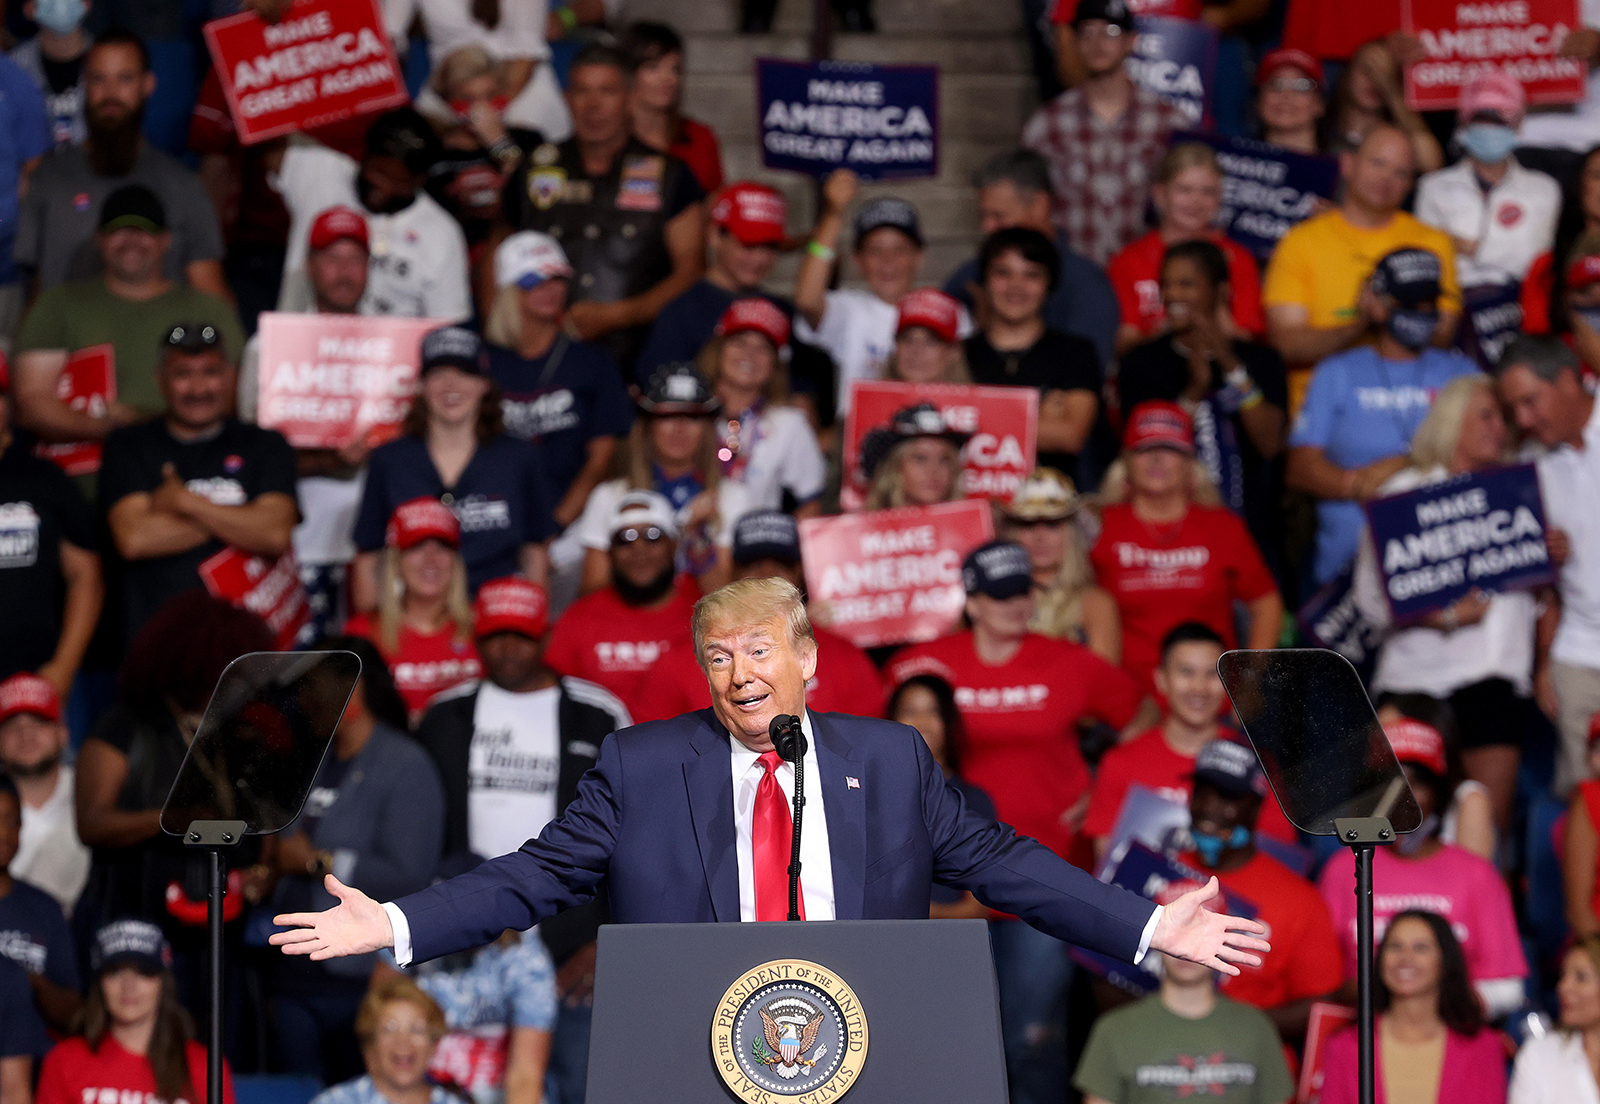 US President Donald Trump speaks at a campaign rally at the BOK Center, June 20, in Tulsa, Oklahoma.